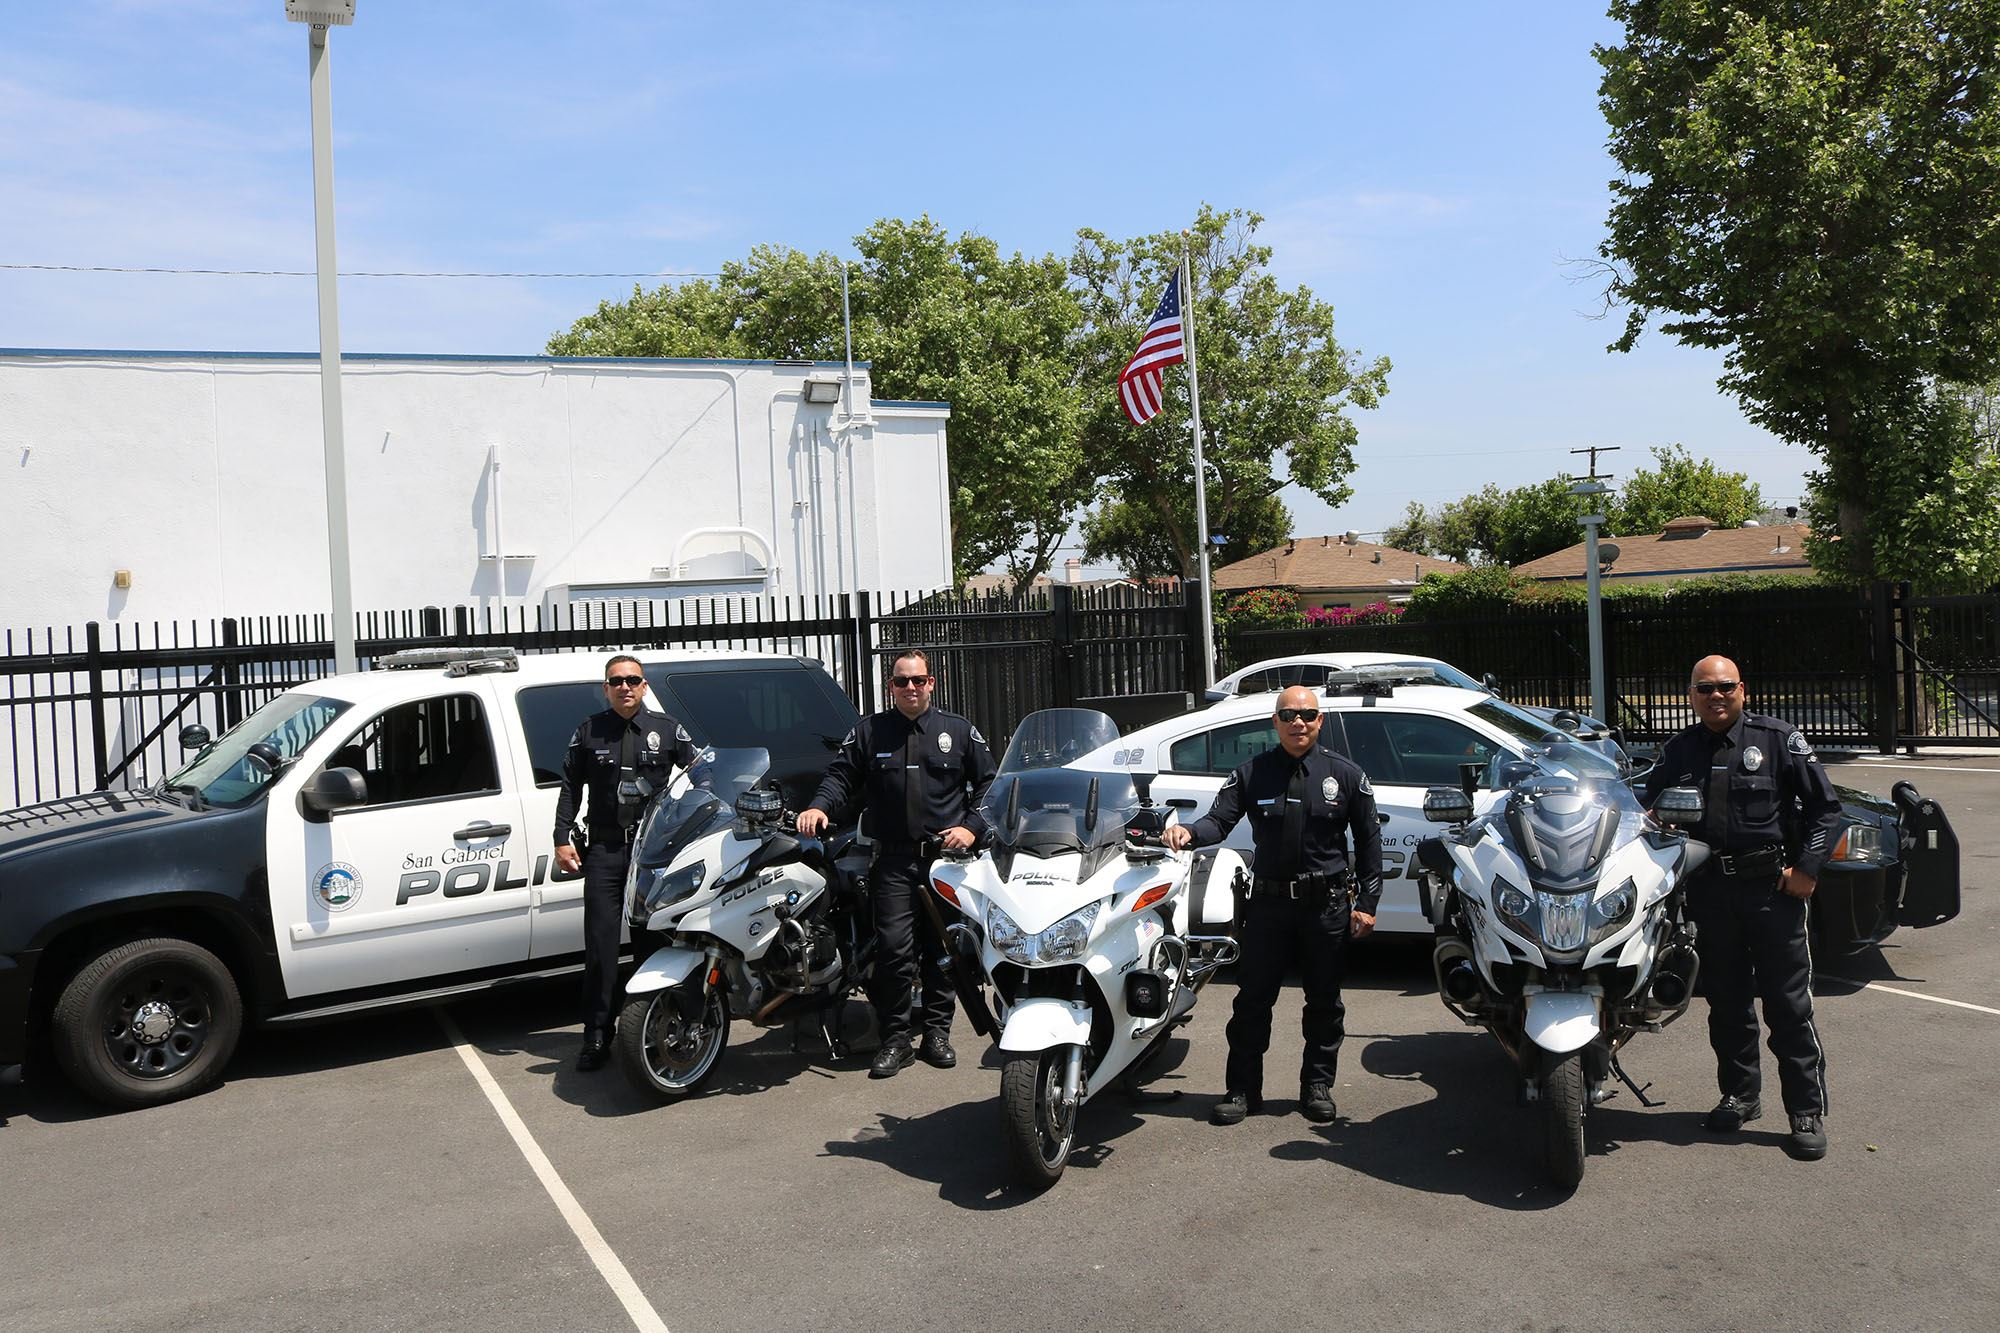 San Gabriel Police Department to open new satellite station August 8